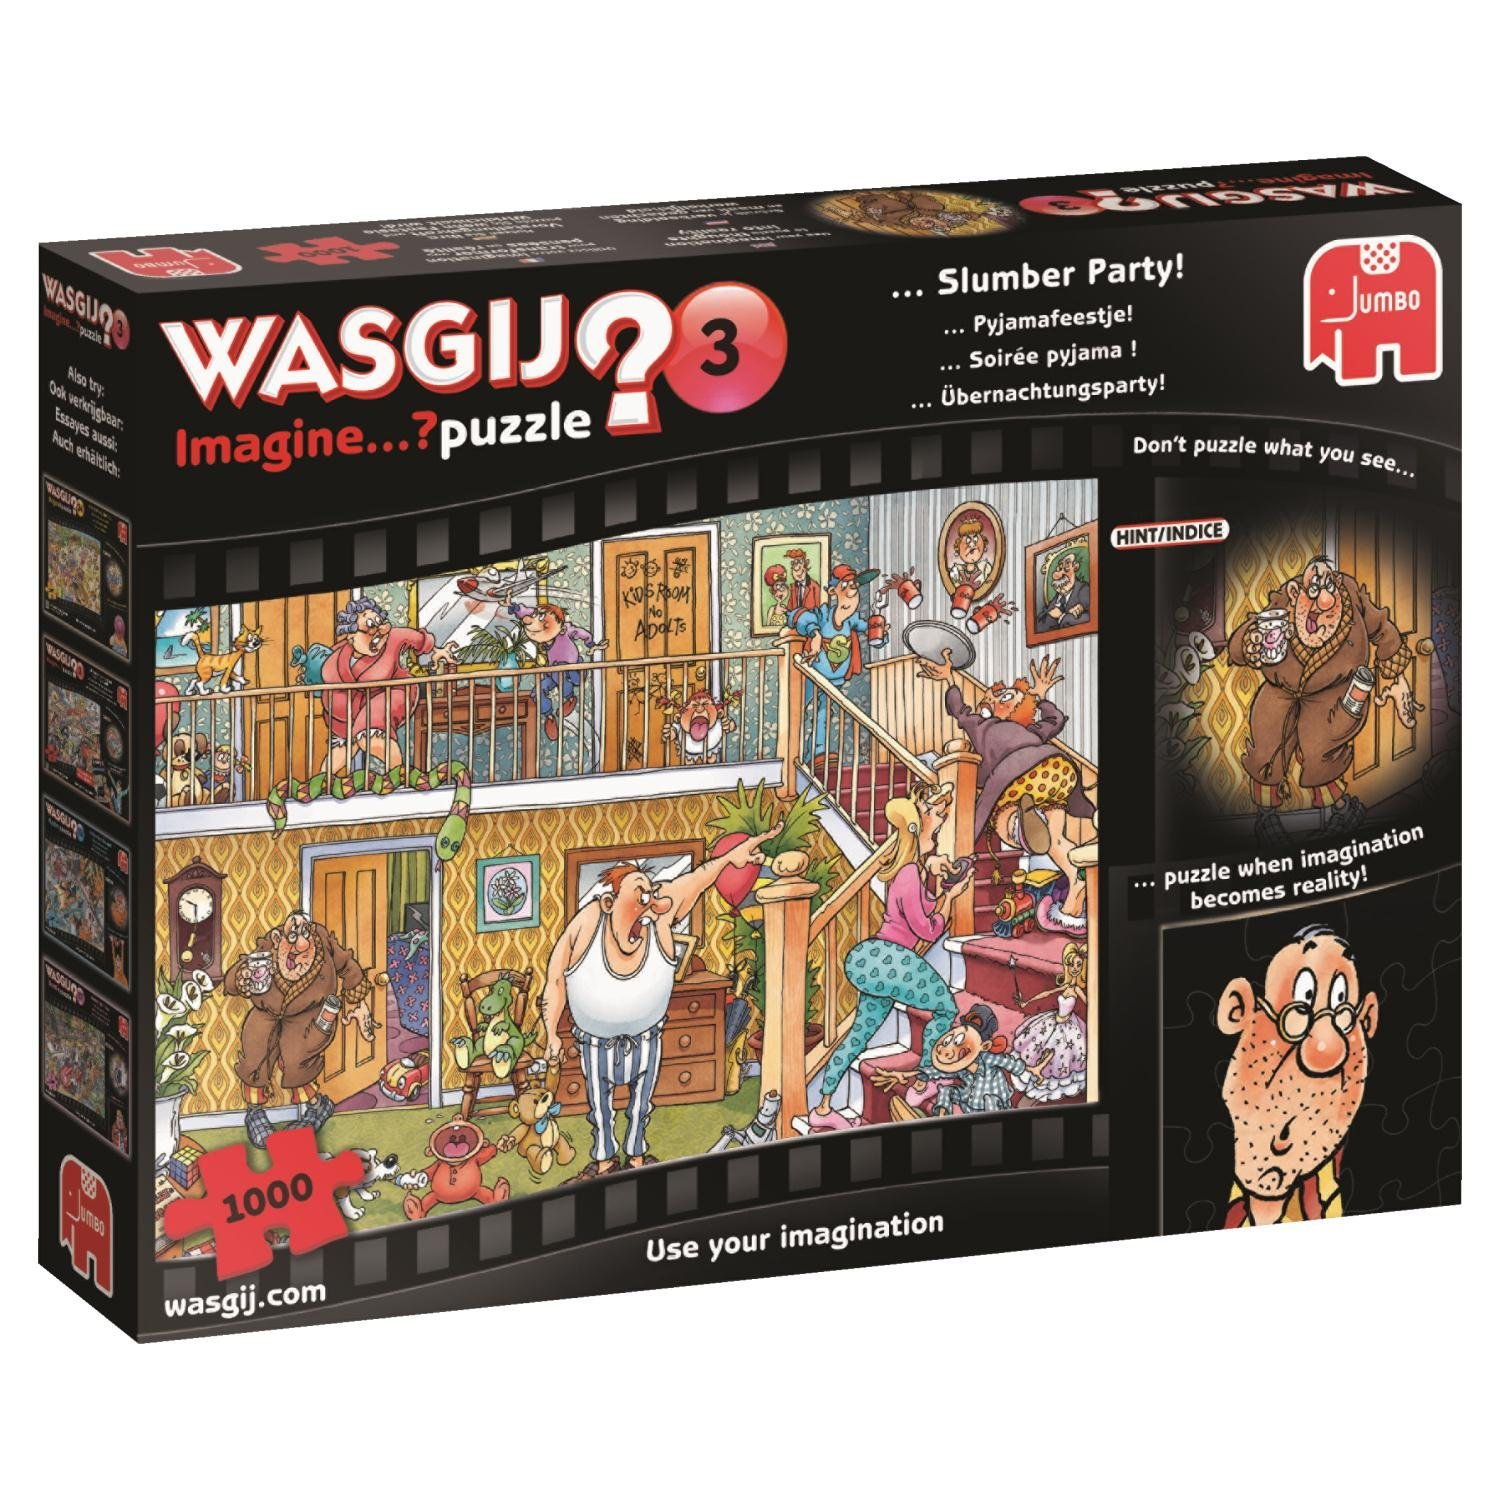 Wasgij - Imagine 3, Slumber Party, 1000pc Jigsaw Puzzle